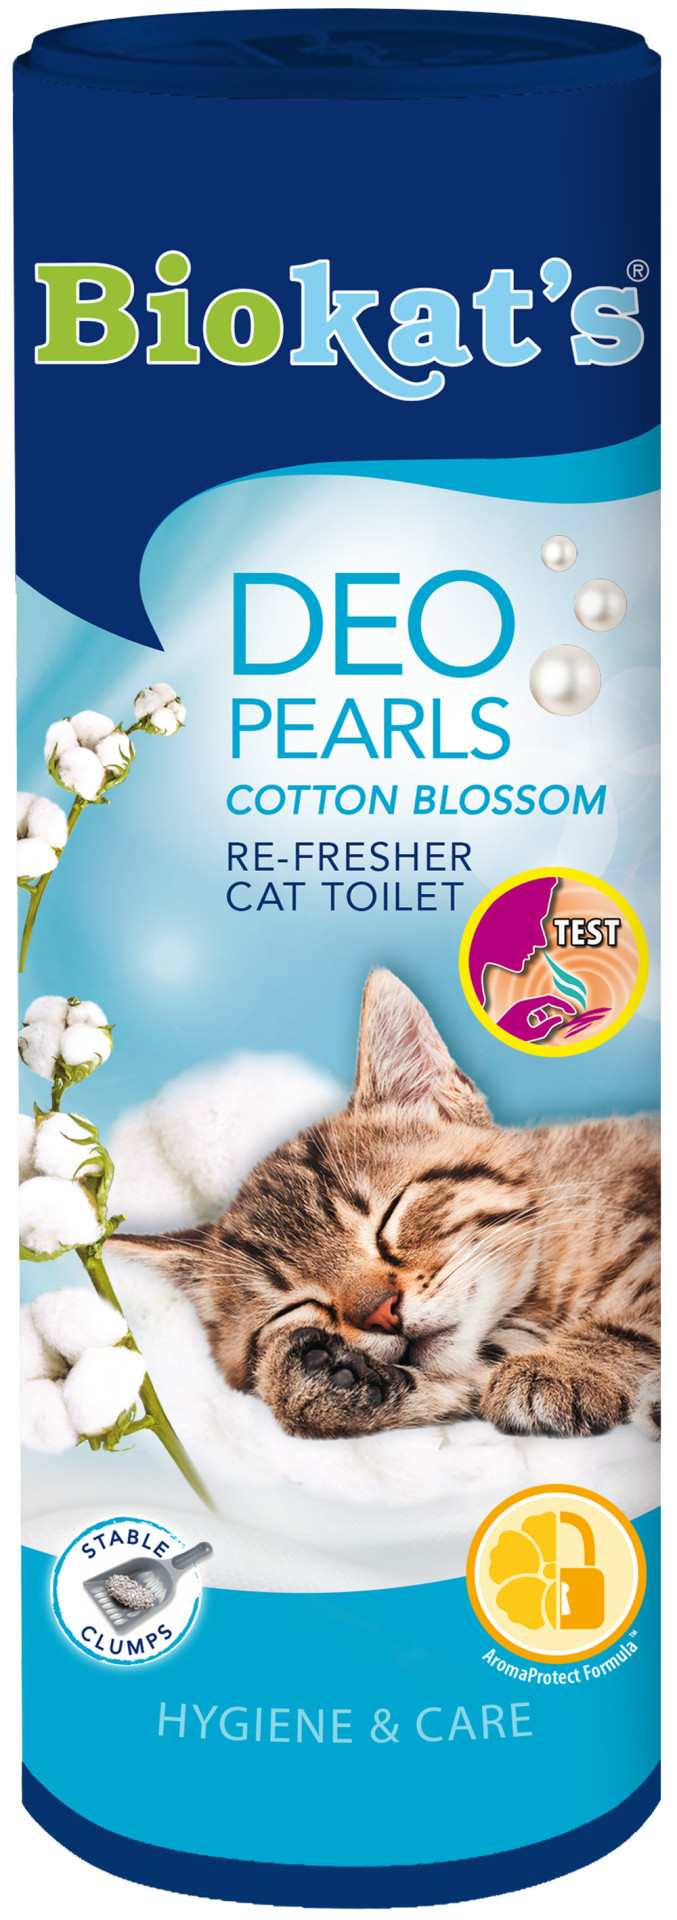 Biokat's Deo Pearls Cotton Blossom 700 gr